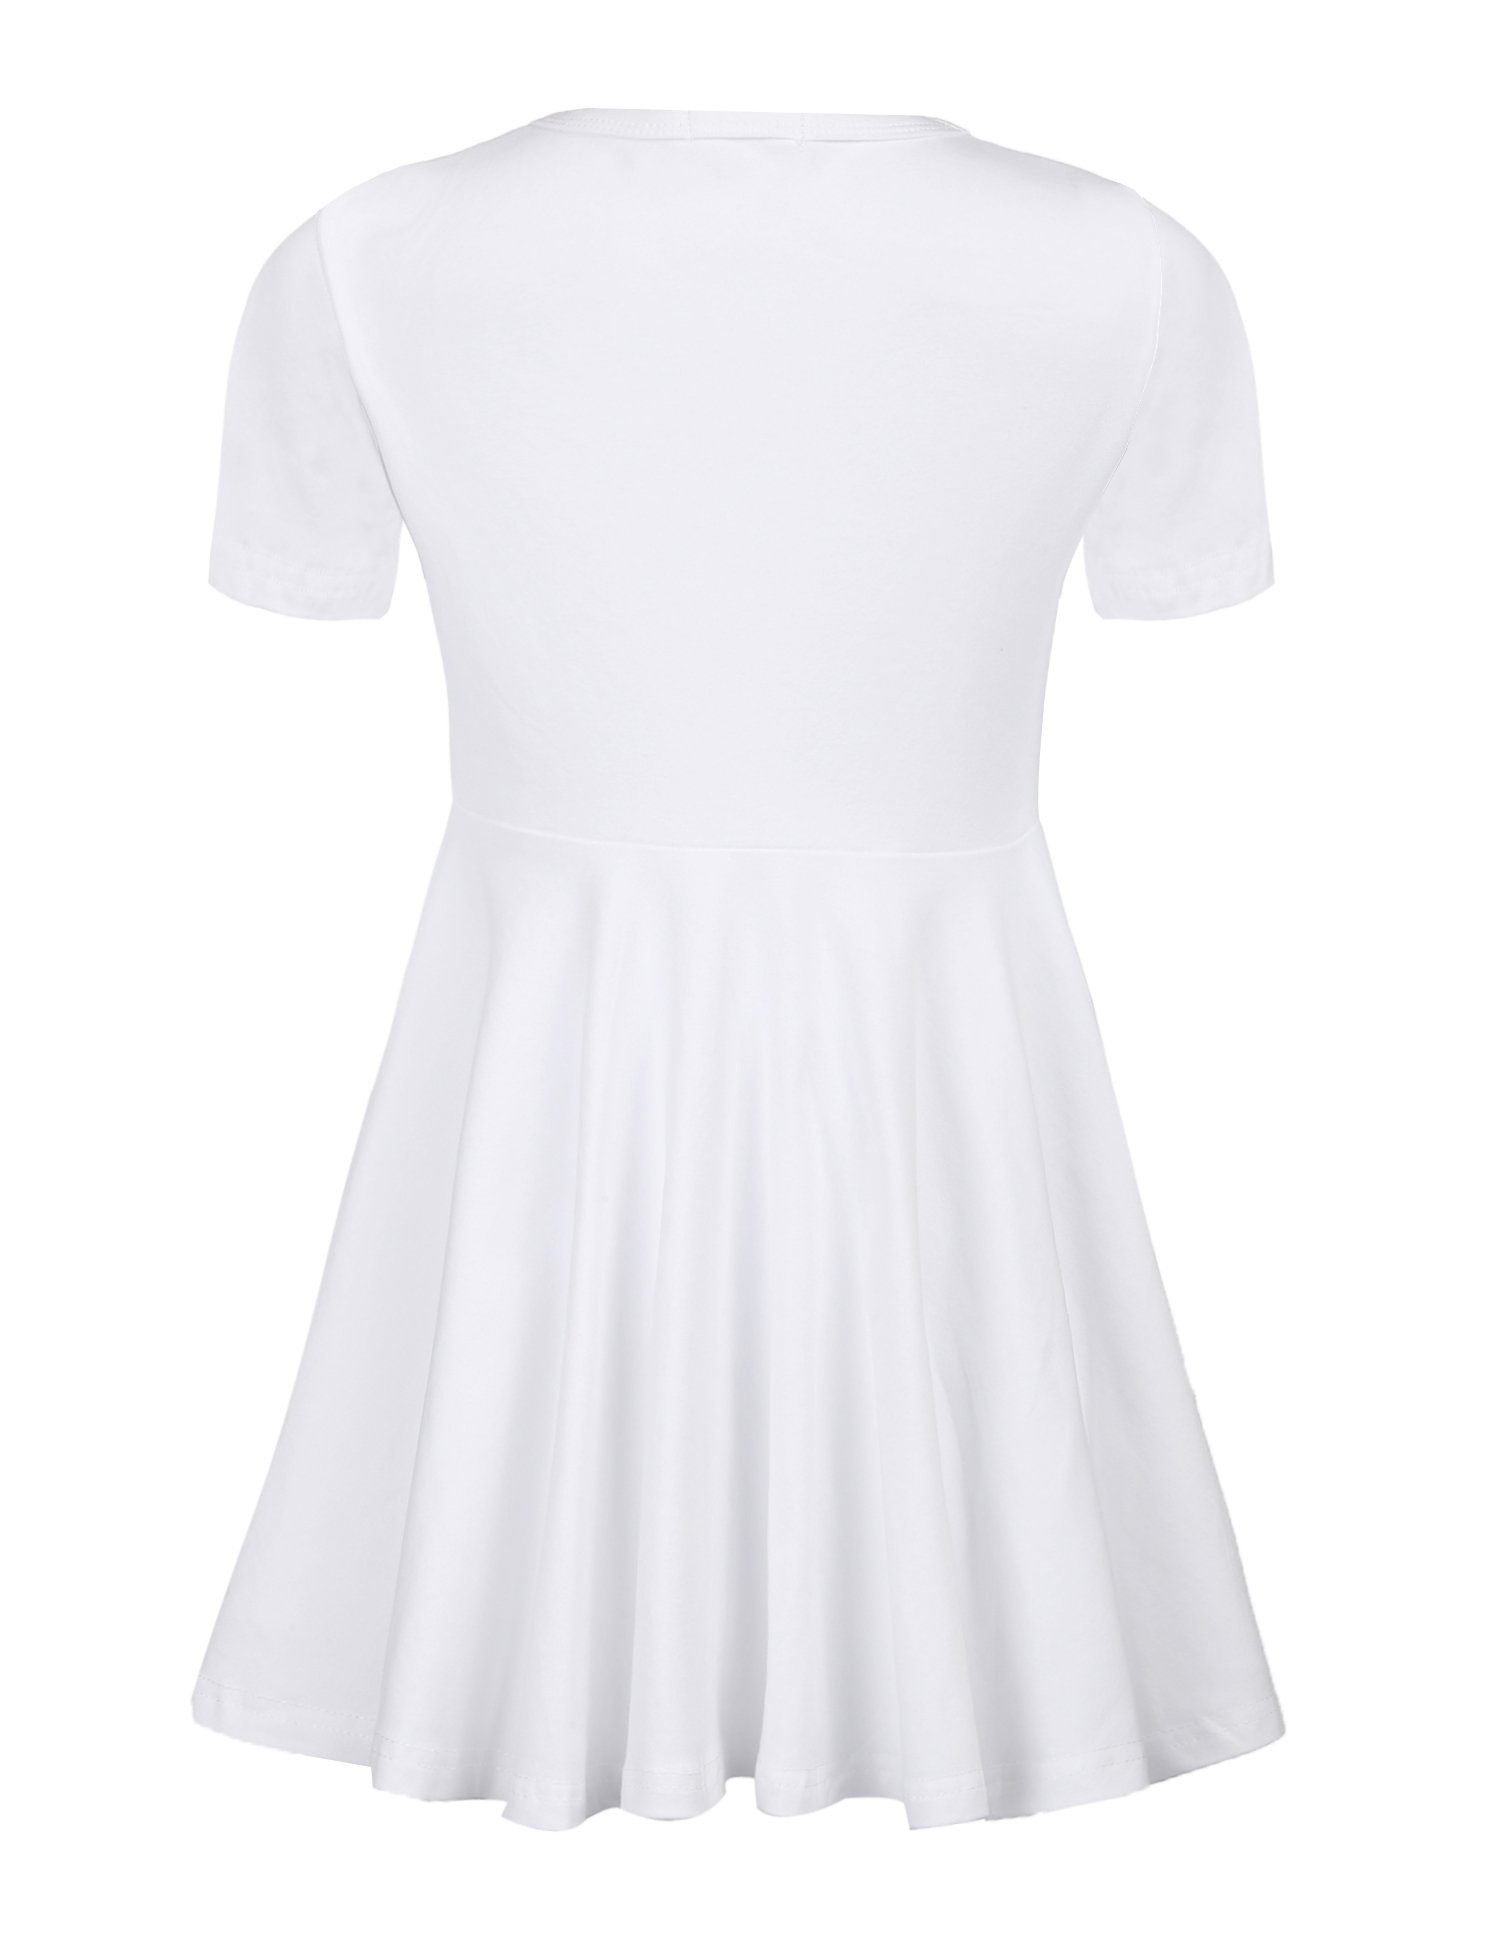 Arshiner Girls Short Sleeve Dress A Line Skater Swing Asymmetrical High Low Hem Casual Dress by Arshiner (Image #3)